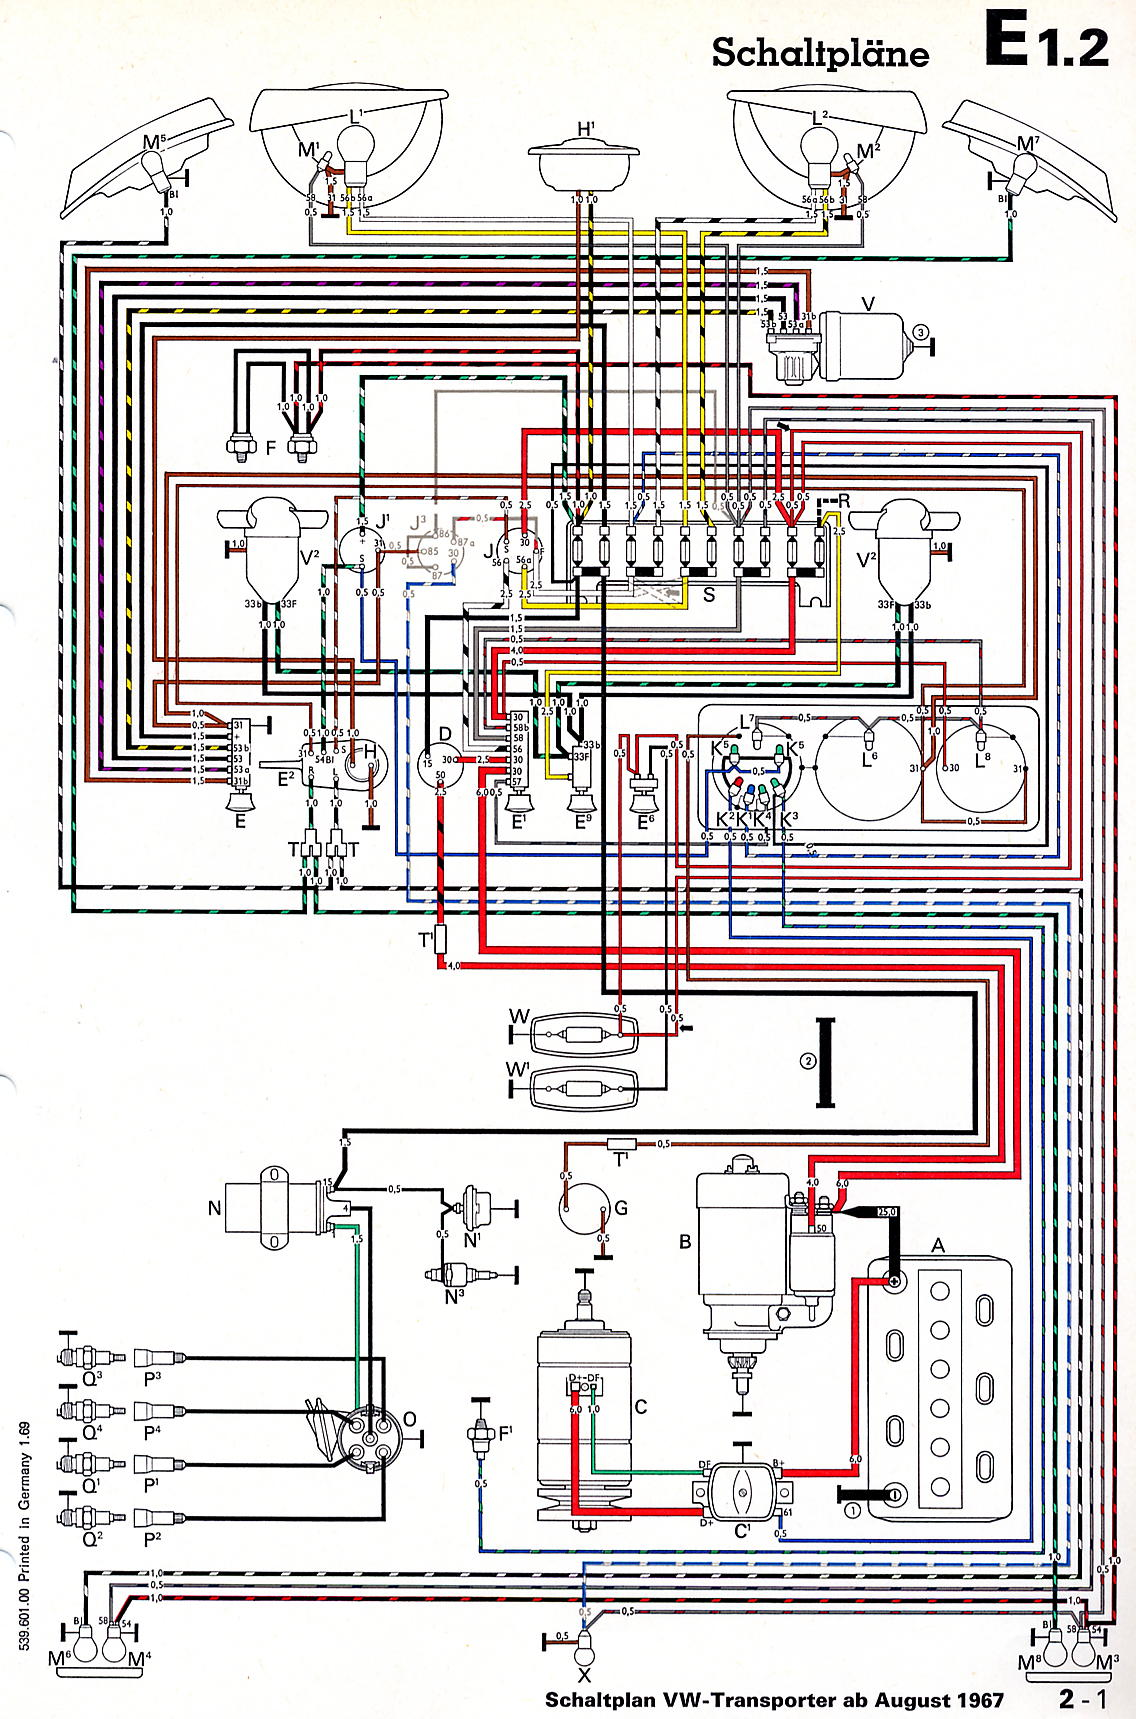 wiring diagram for vw t4 simple wiring diagram Volkswagen Engine Diagram wiring diagram vw transporter t4 schematic diagram electrical wiring diagrams wiring diagram 93 eurovan westfalia wiring